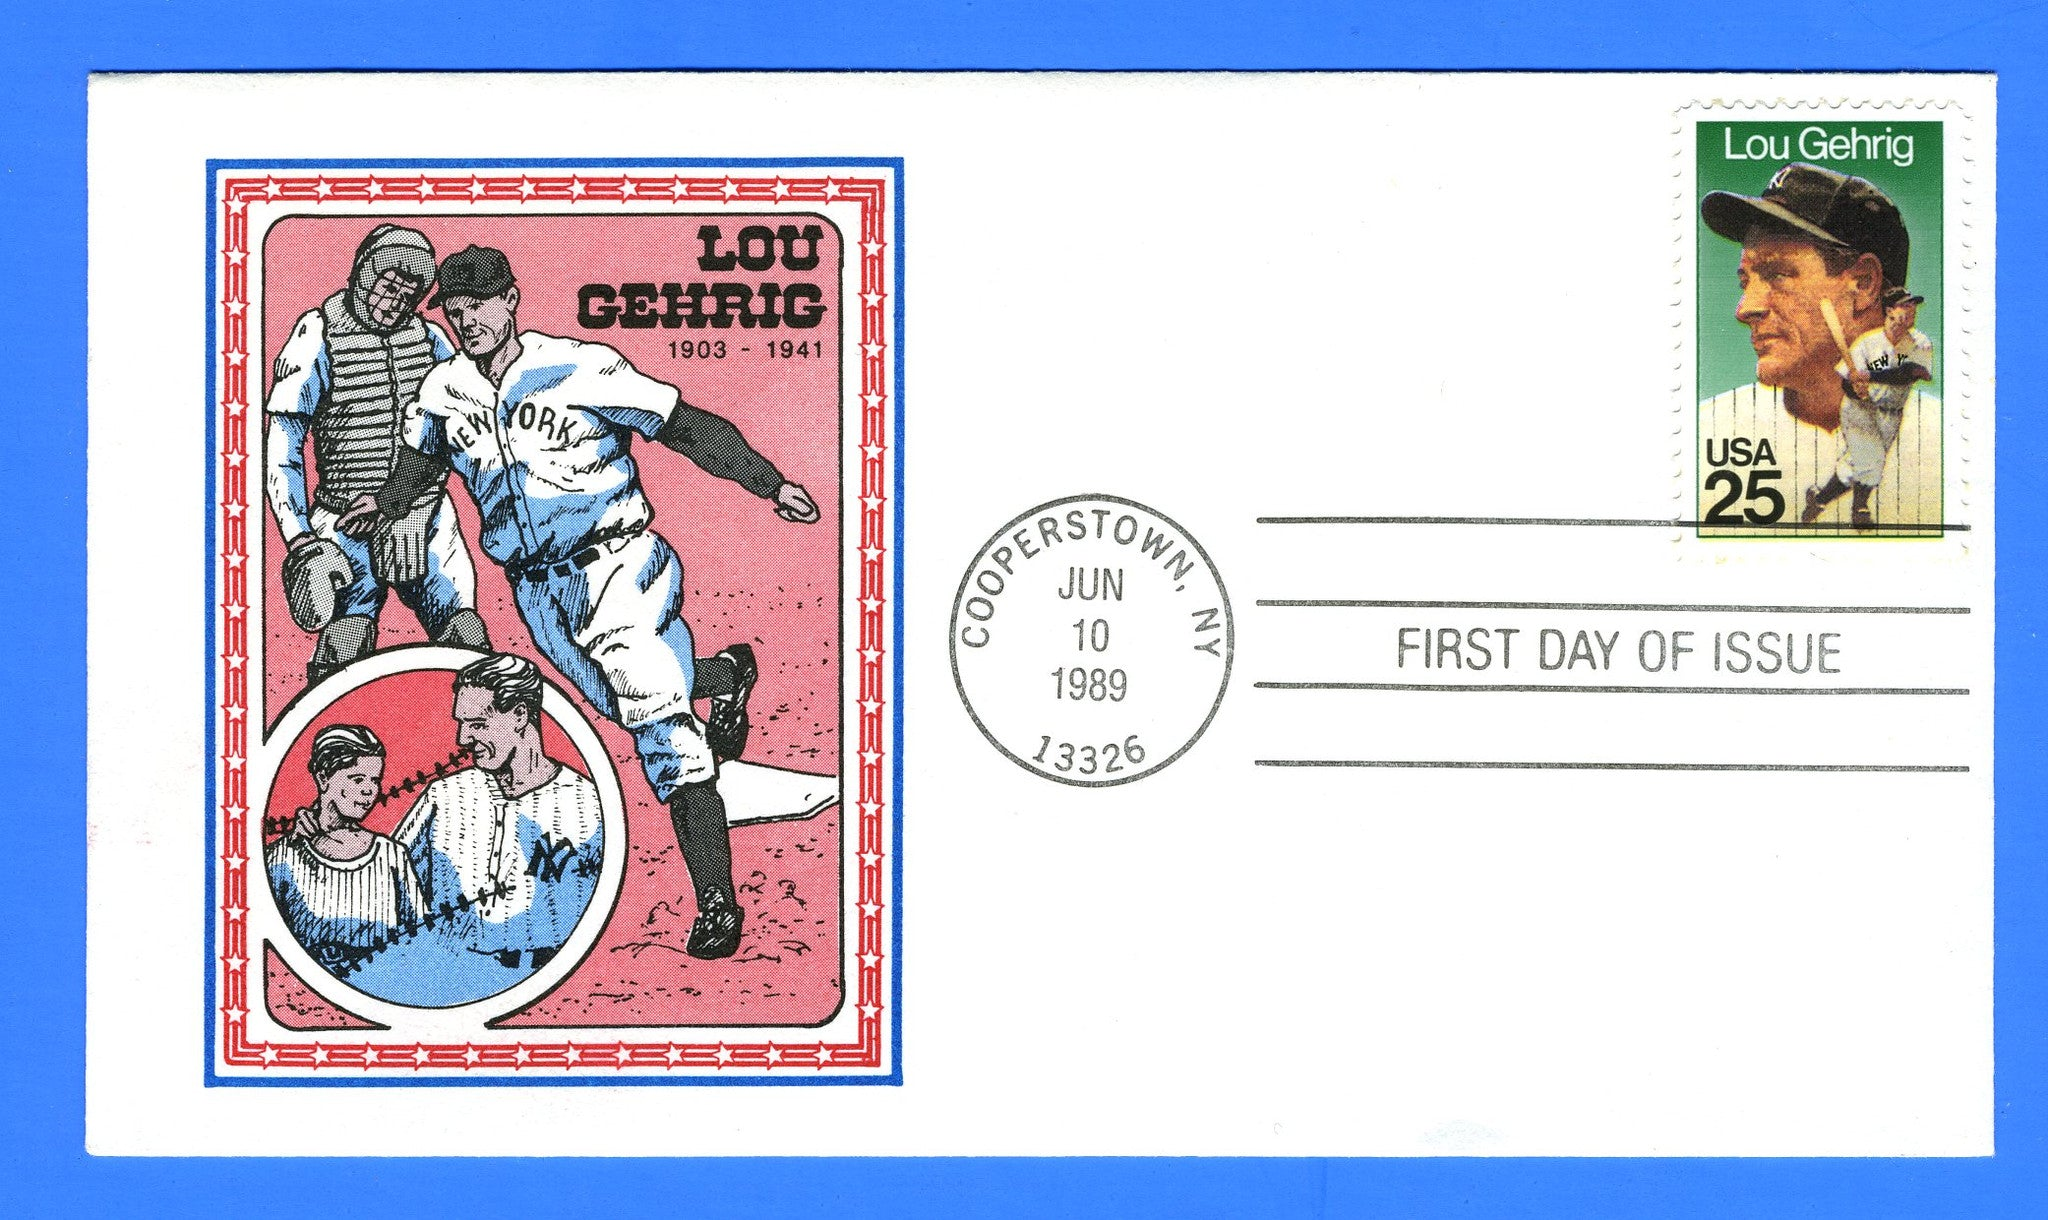 Scott 2417 25c Lou Gehrig First Day Cover by Panda Cachets